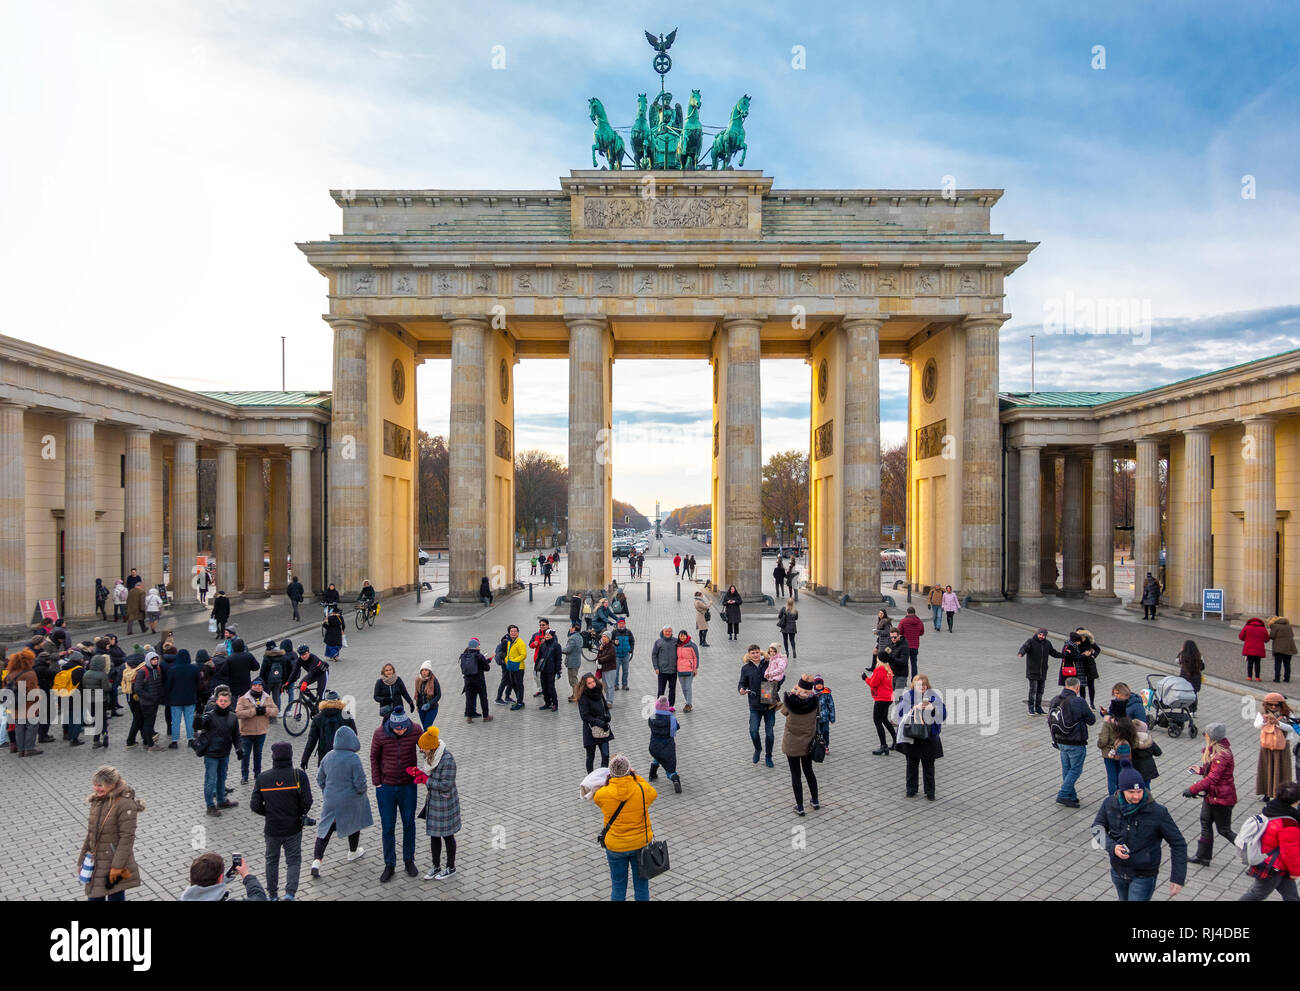 https://c7.alamy.com/comp/RJ4DBE/berlin-brandenburg-gate-berlin-brandenburger-tor-RJ4DBE.jpg